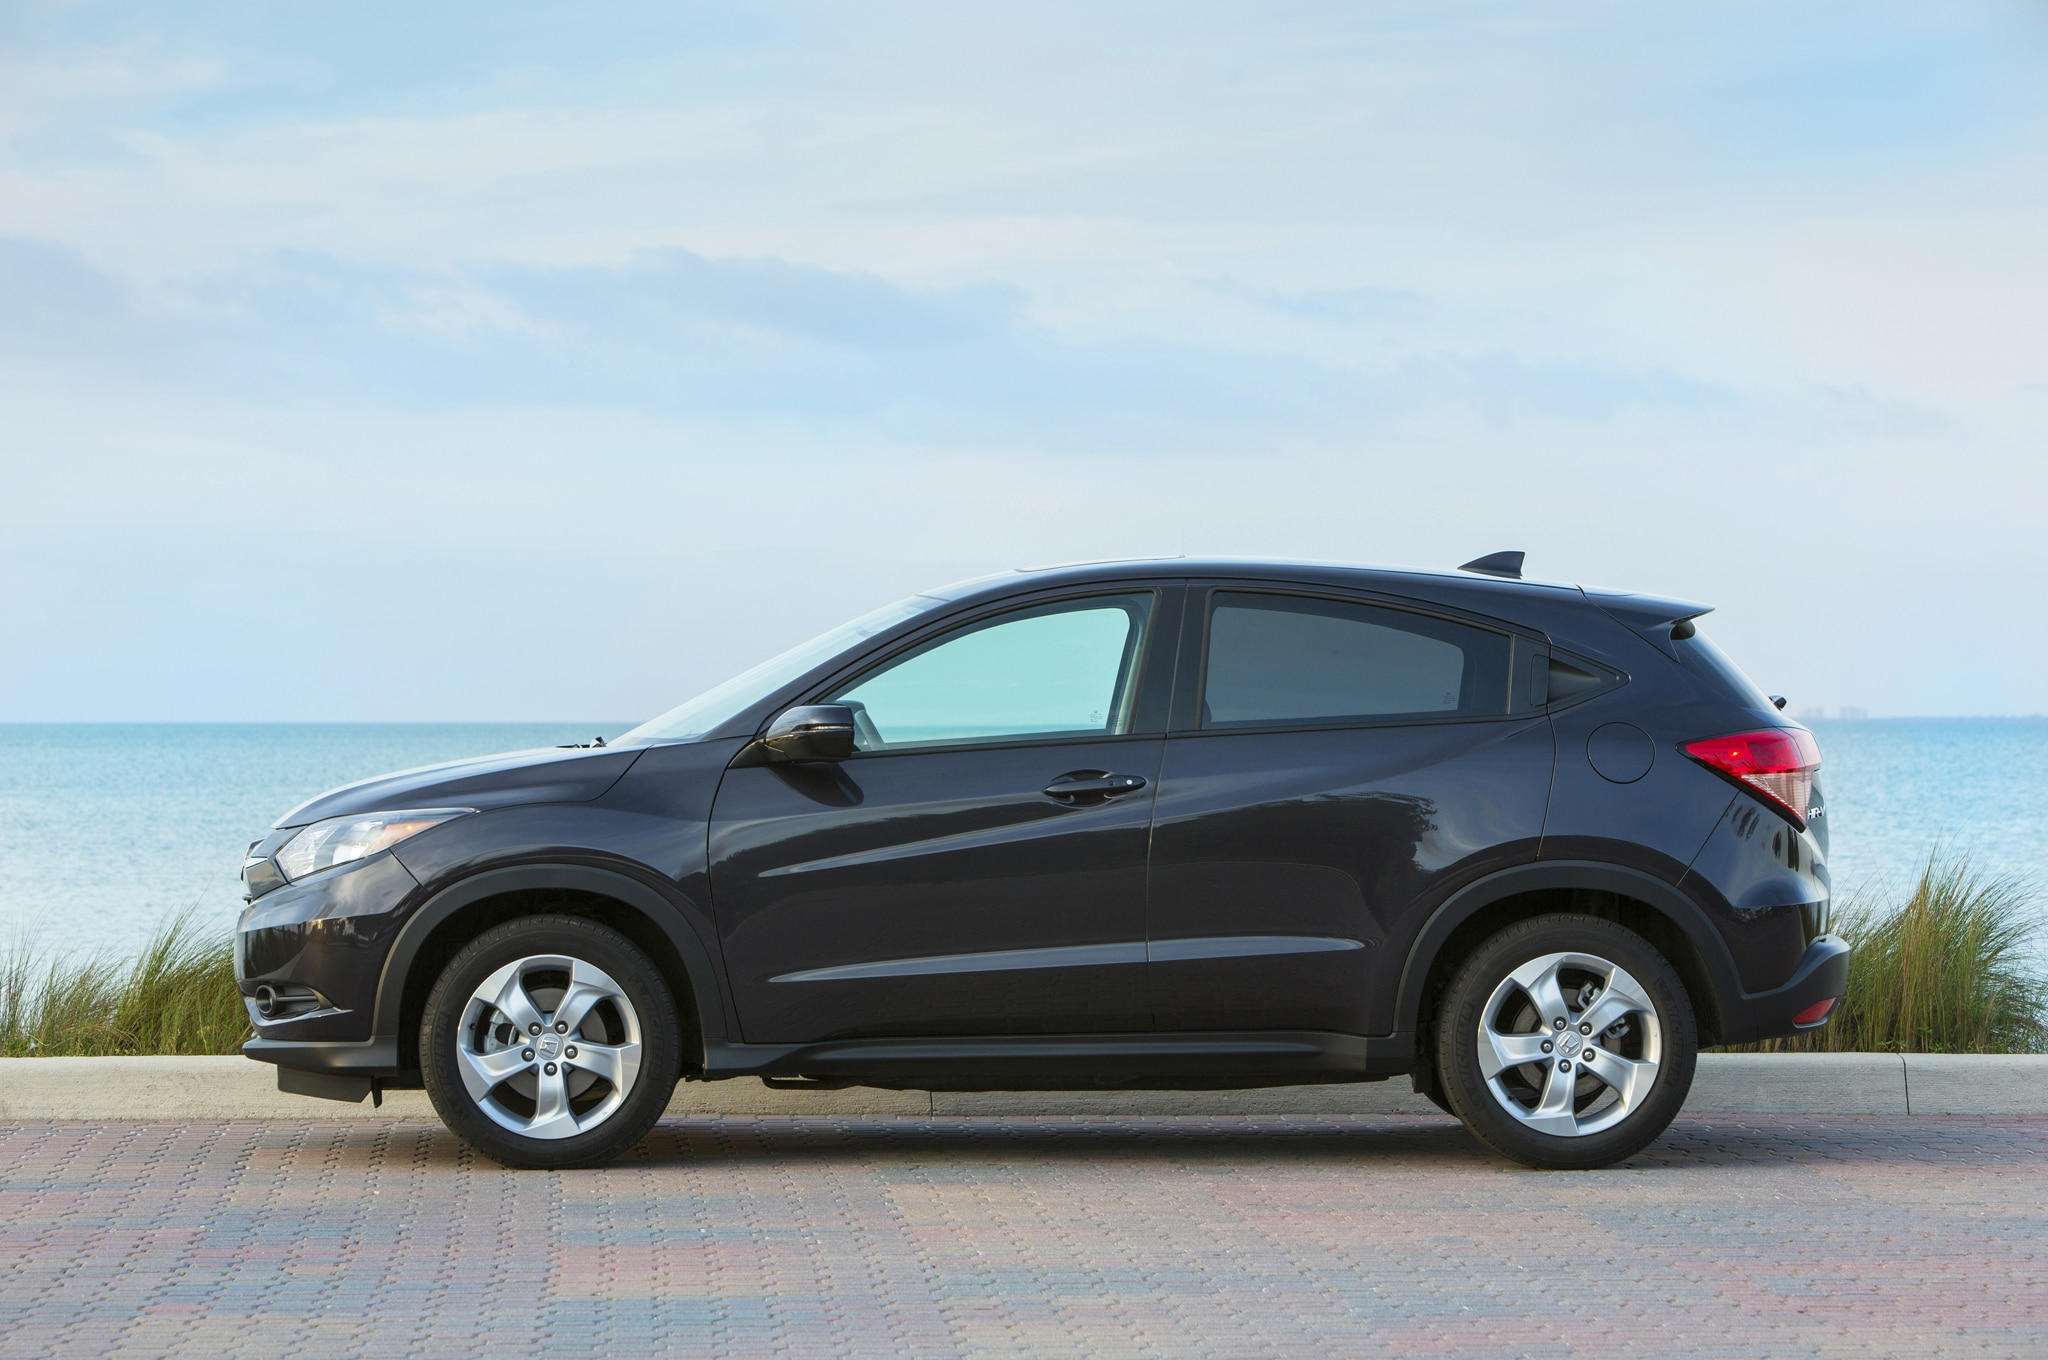 2016 honda hr v review for Honda hrv lease